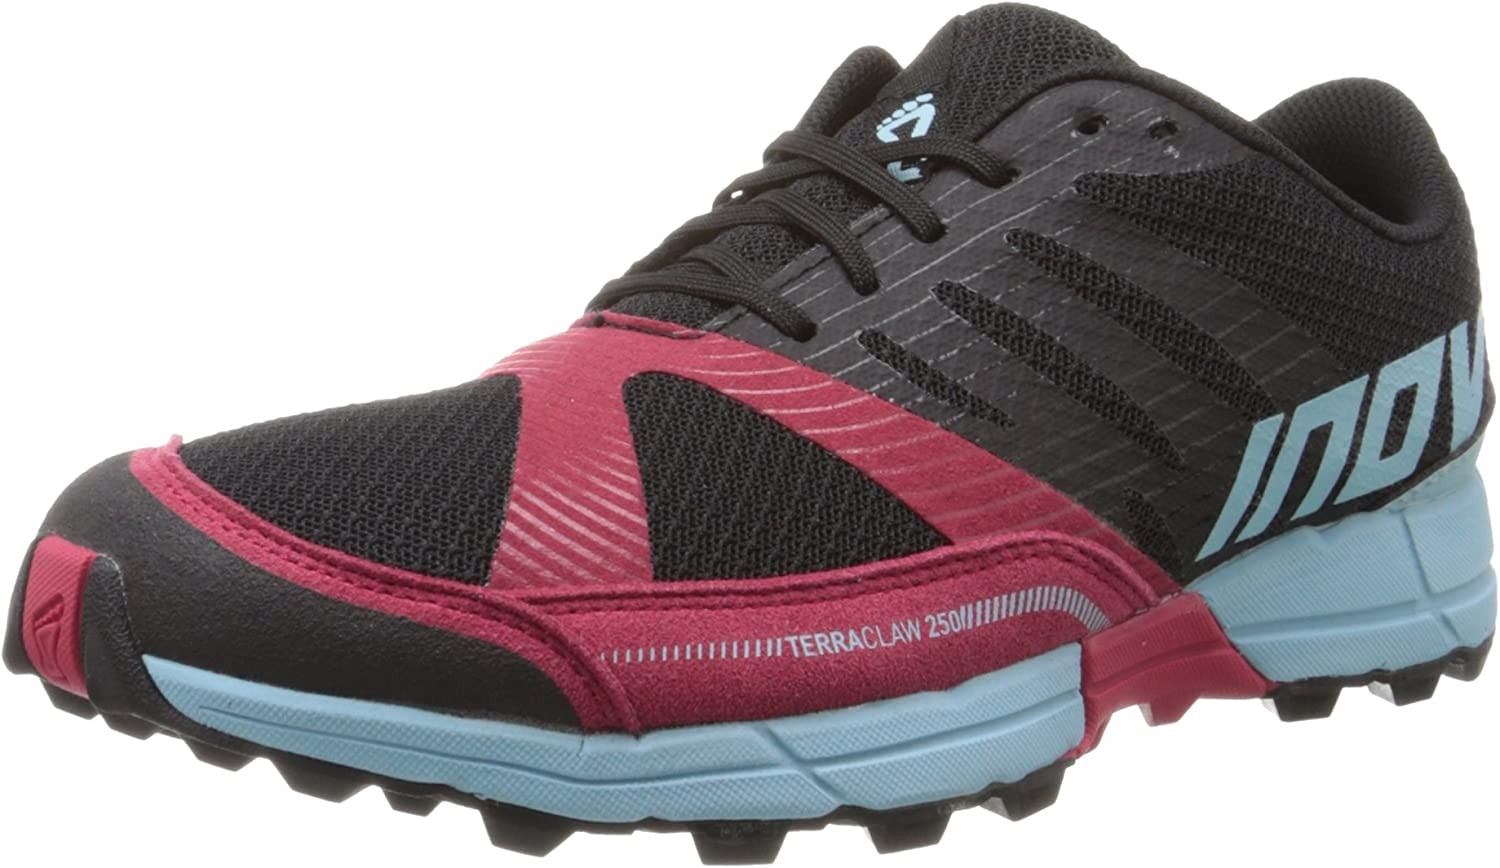 Inov-8 Women s Terraclaw 250 Trail Running Shoe